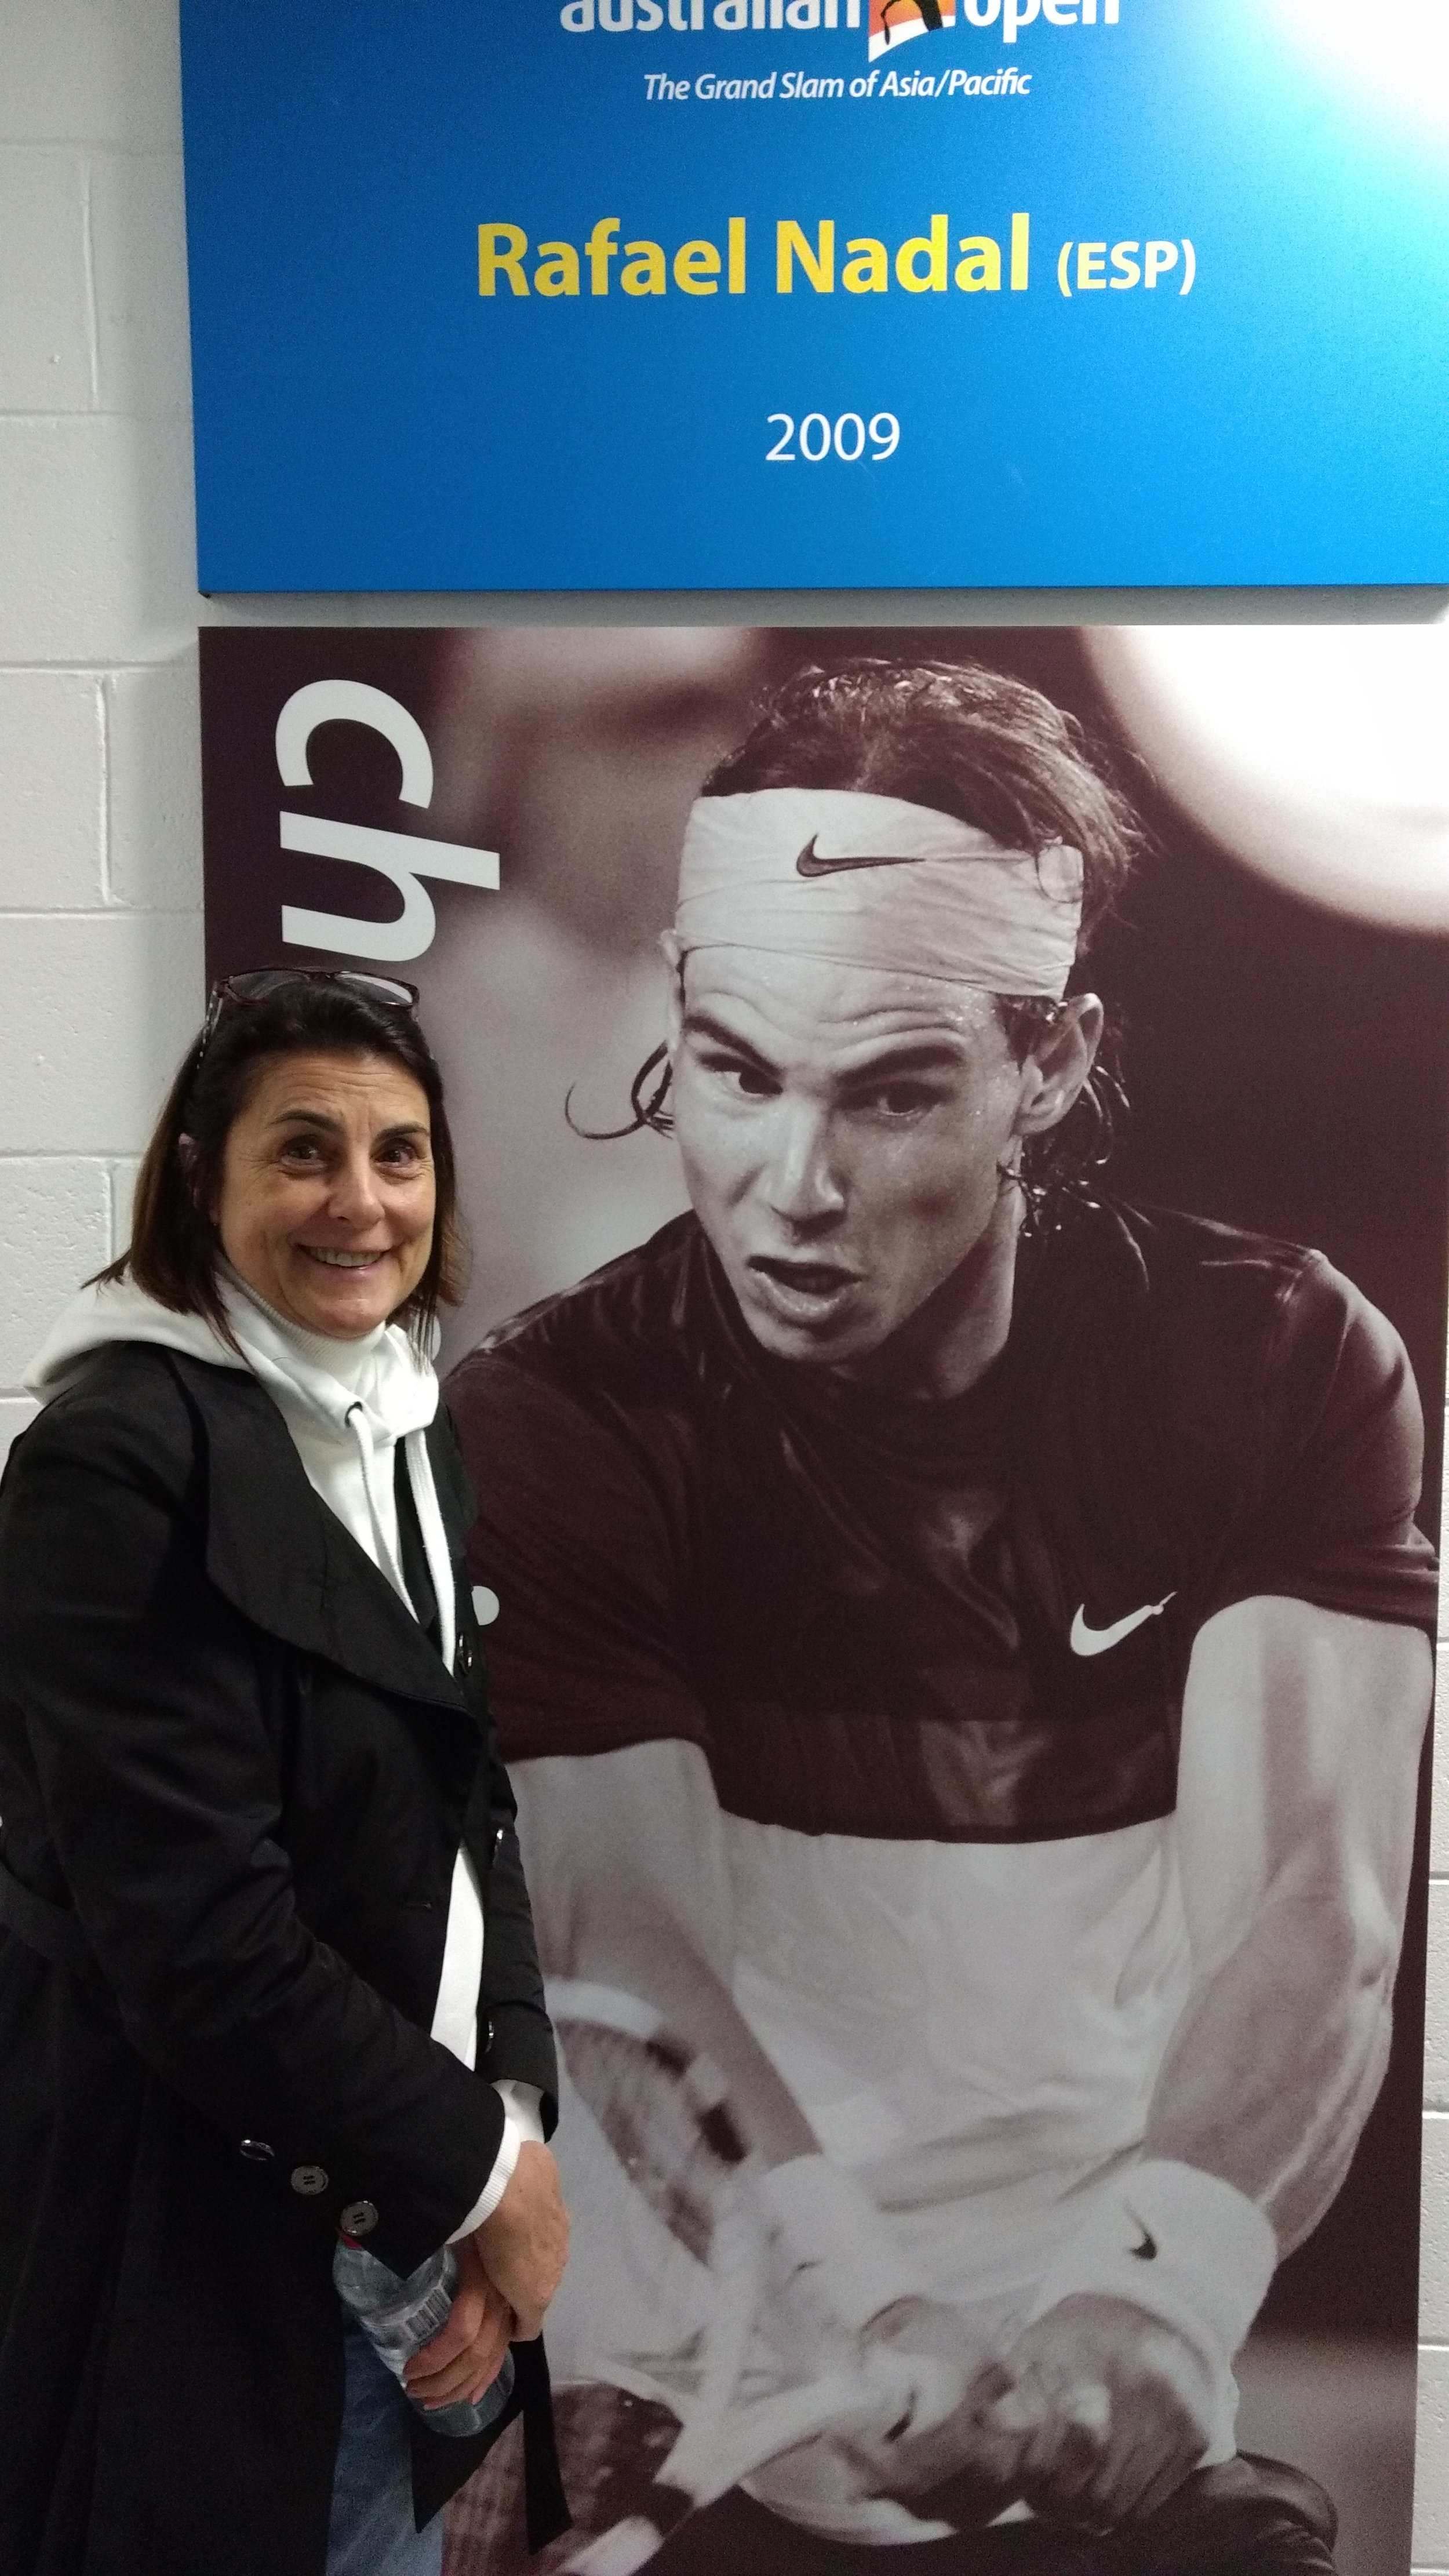 Melbourne Sports Tours guest with Rafa